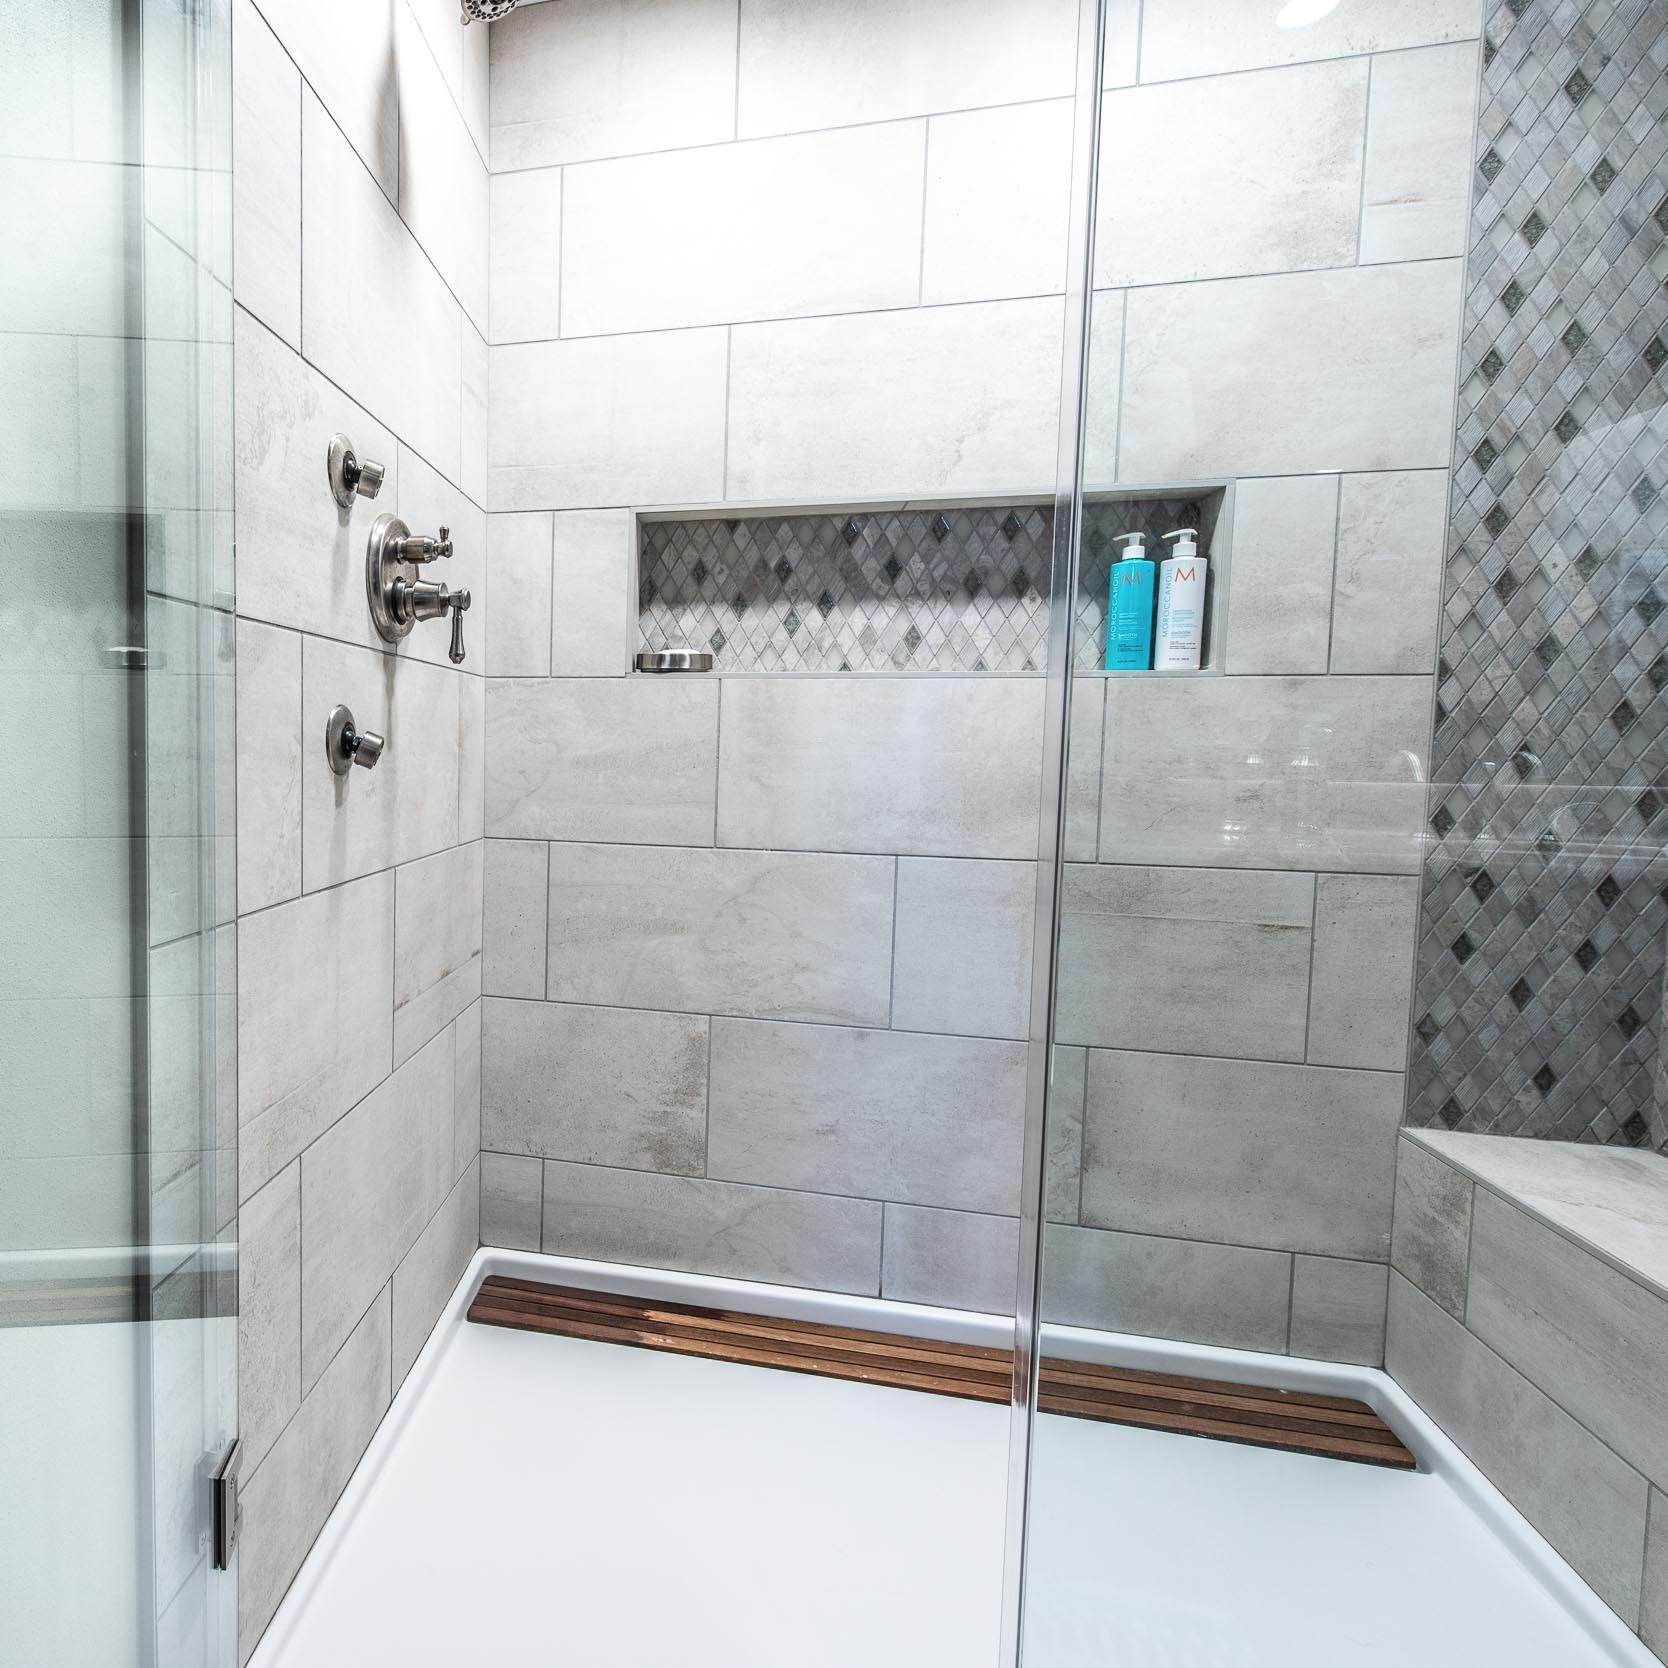 Master Bathroom Suite With Walk-In Shower